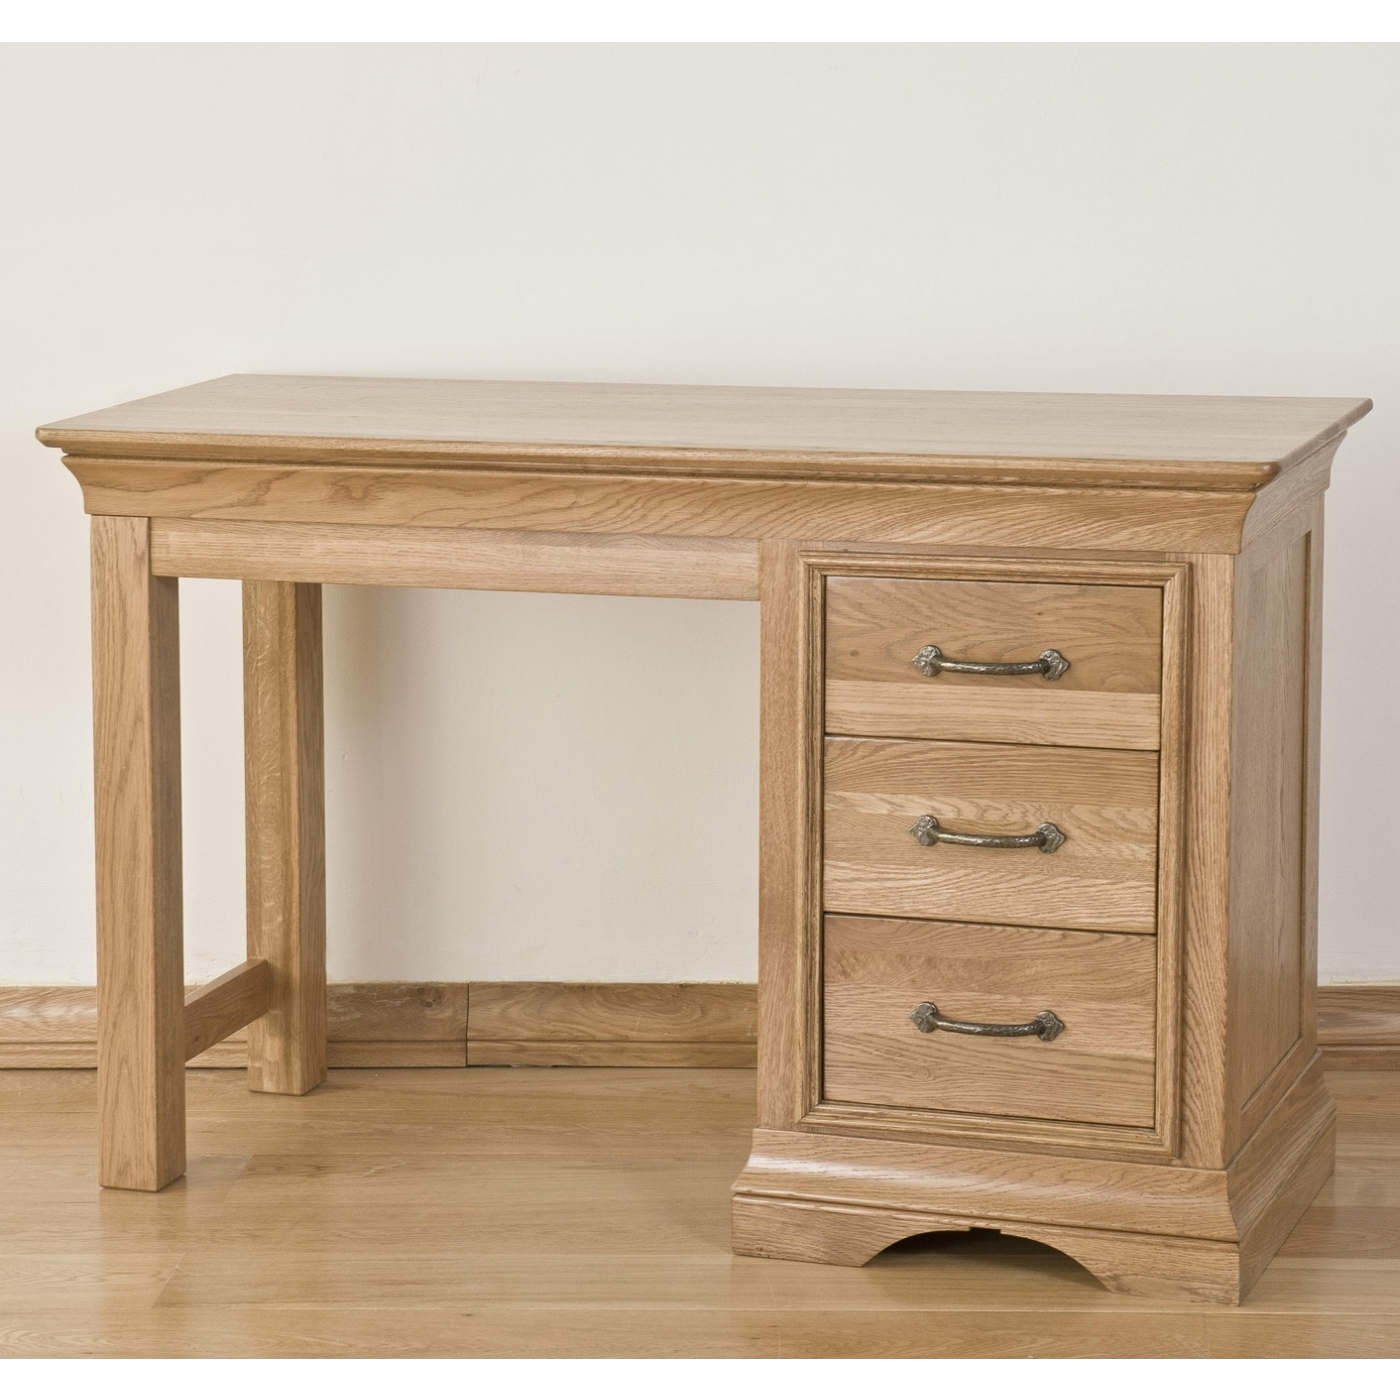 Toulon solid oak furniture single pedestal bedroom for Bedroom dressing table